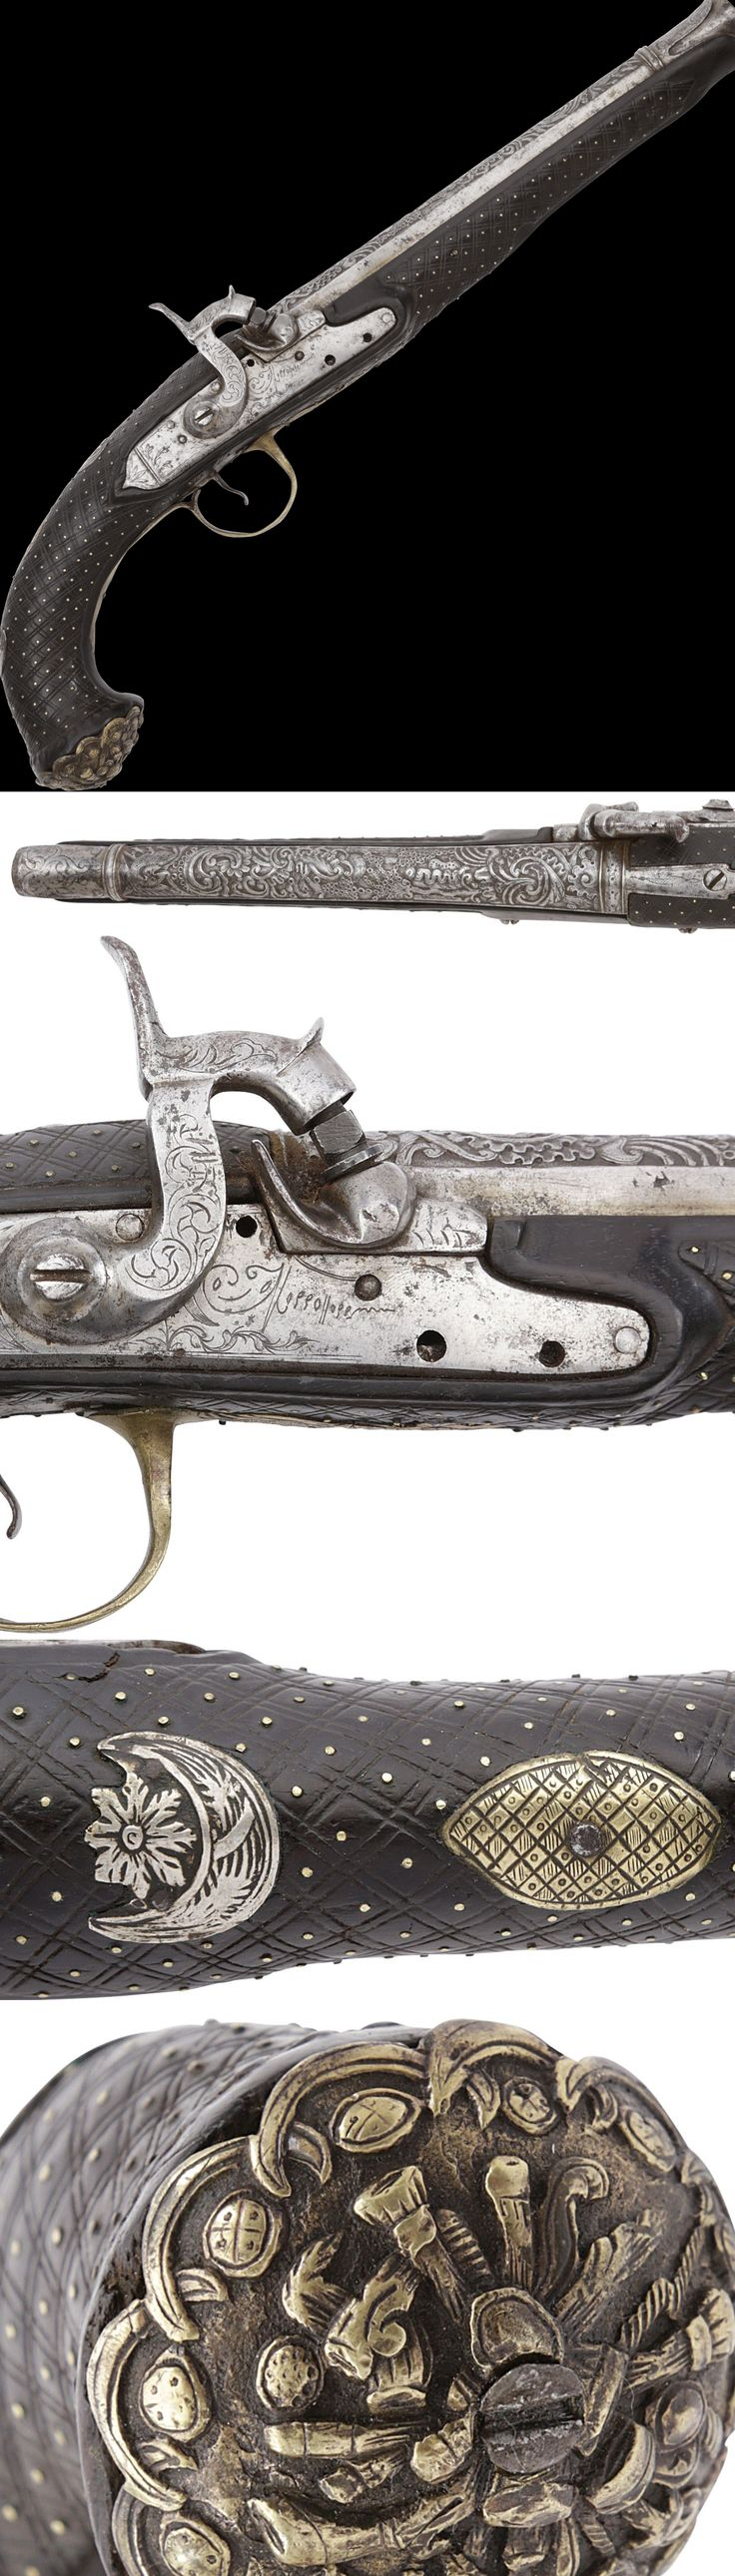 The 485 best Indo-Persian firearms. images on Pinterest | Revolvers ...